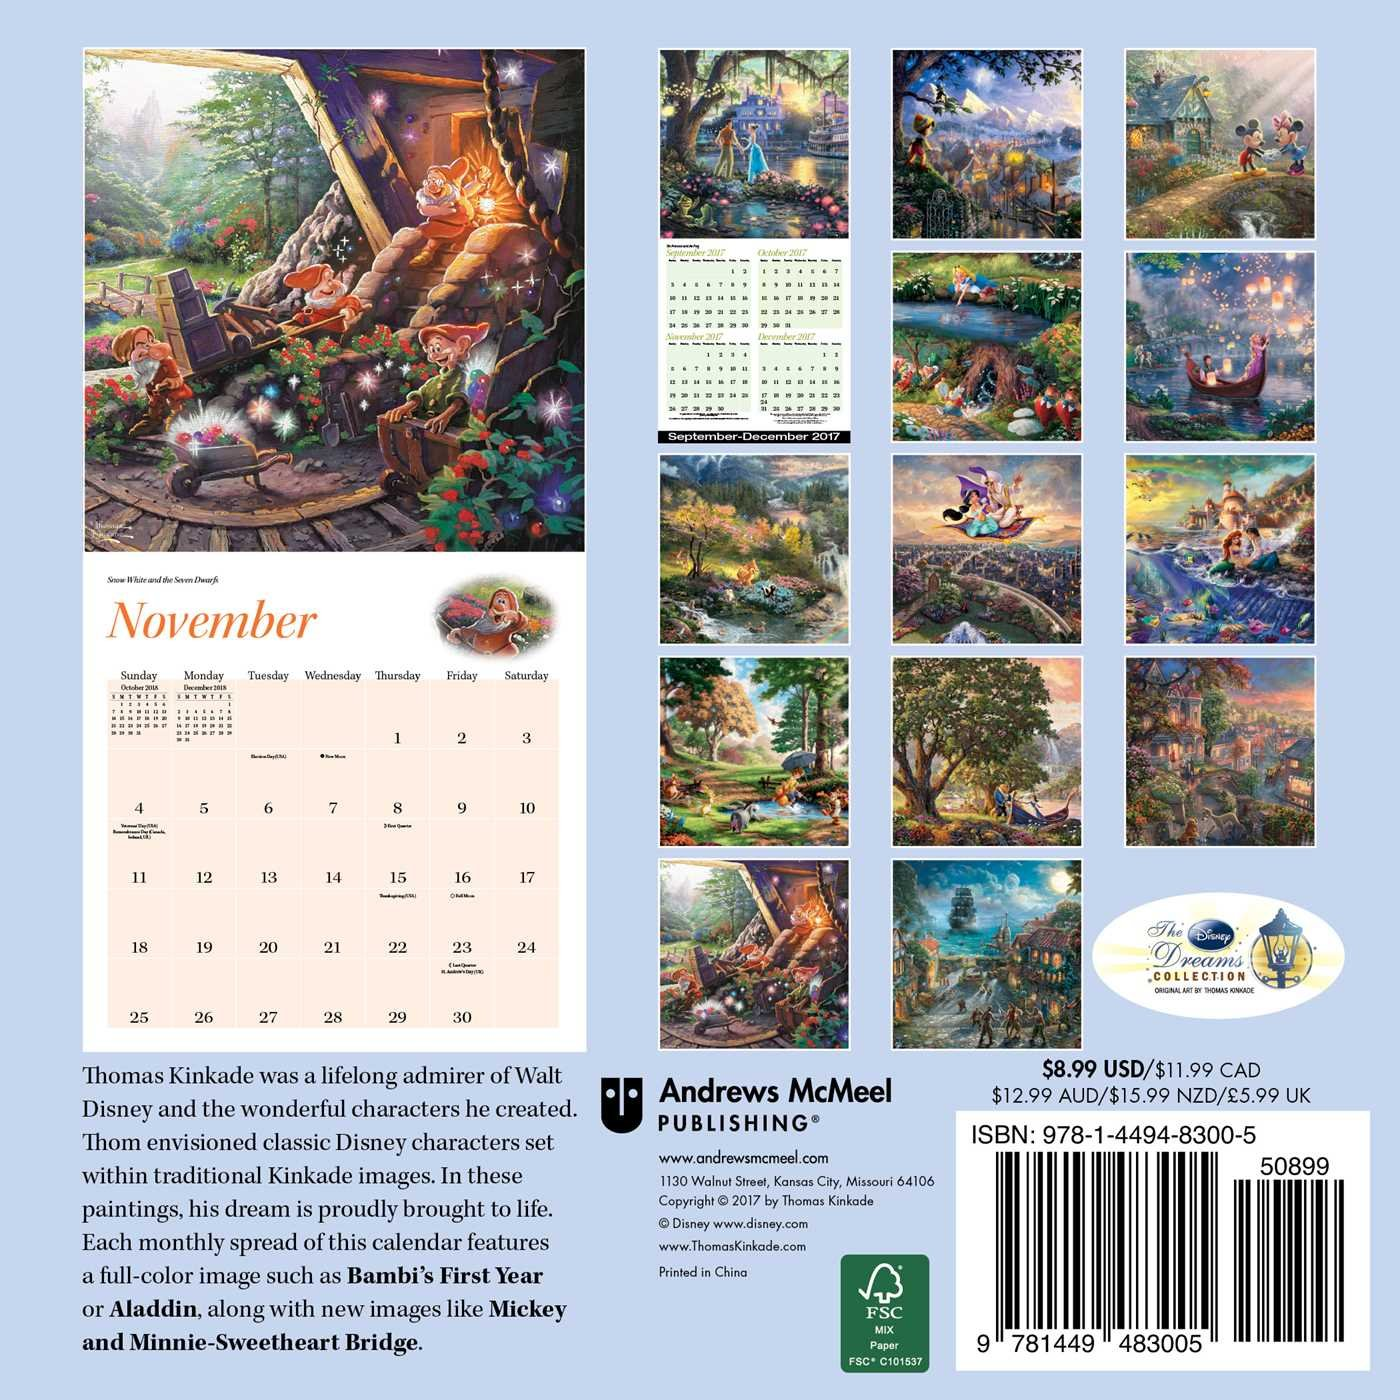 Amazon.com: Thomas Kinkade: The Disney Dreams Collection 2018 Mini